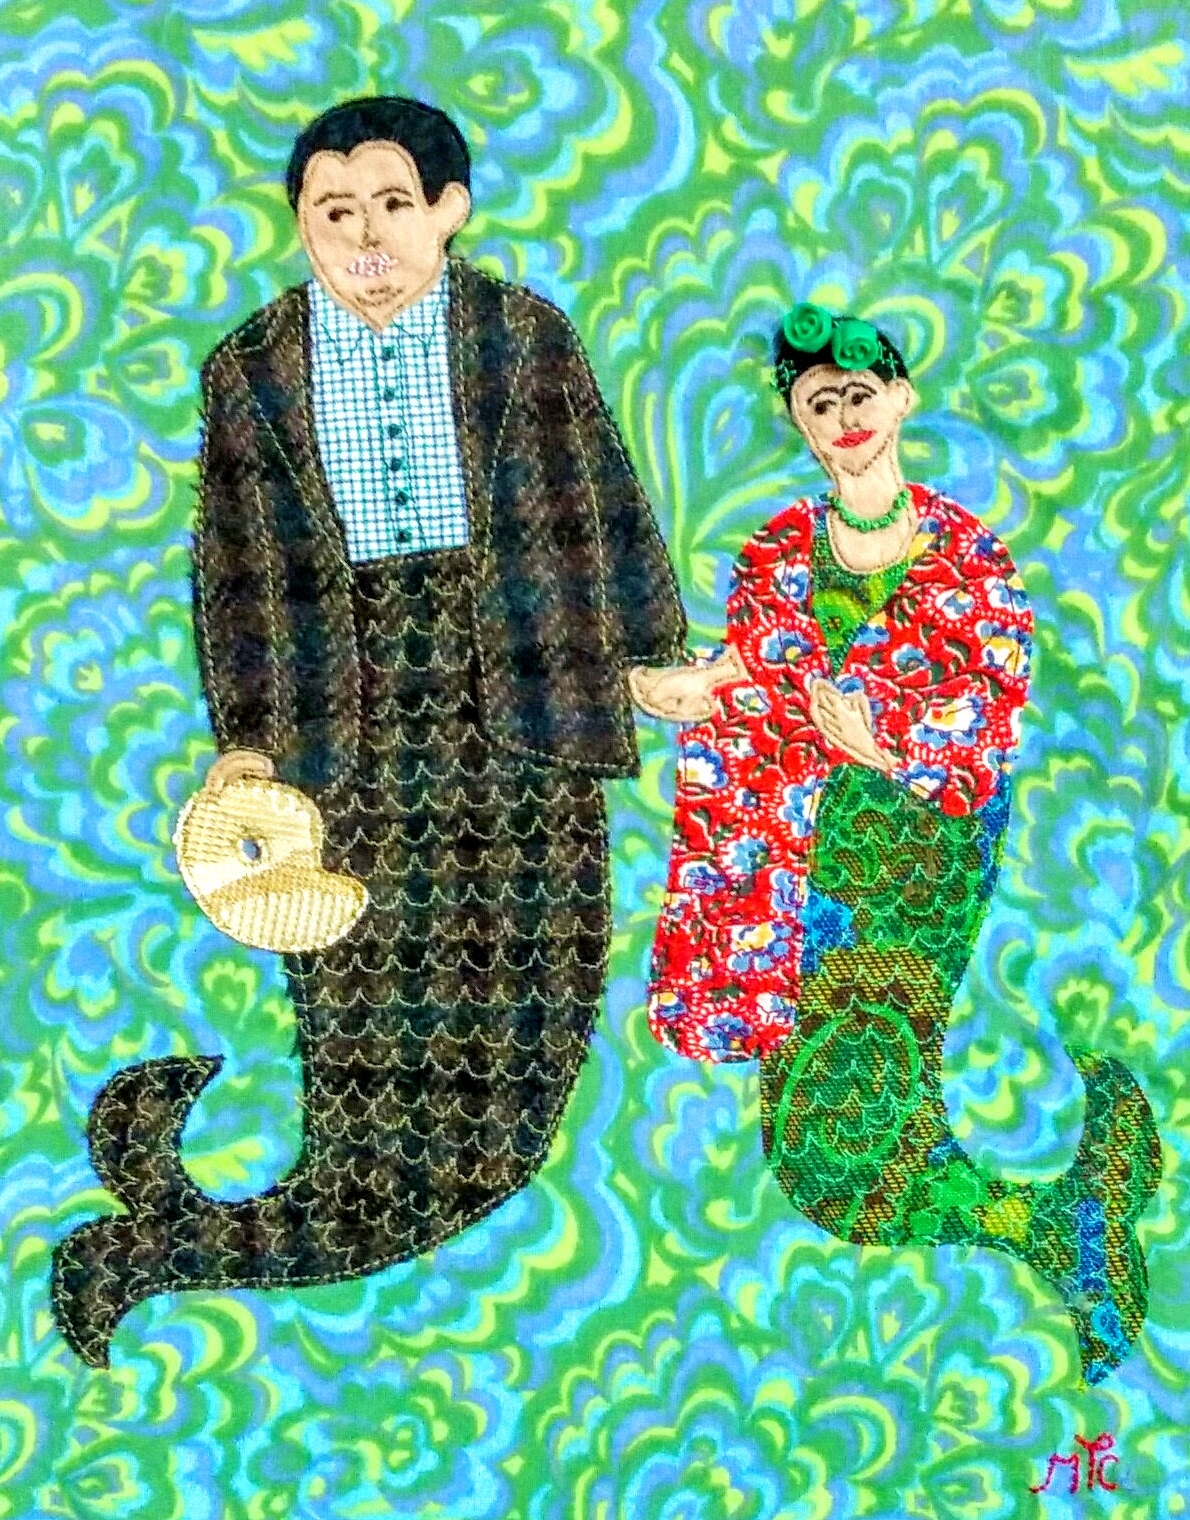 Frida and Diego Under the Sea - 2014